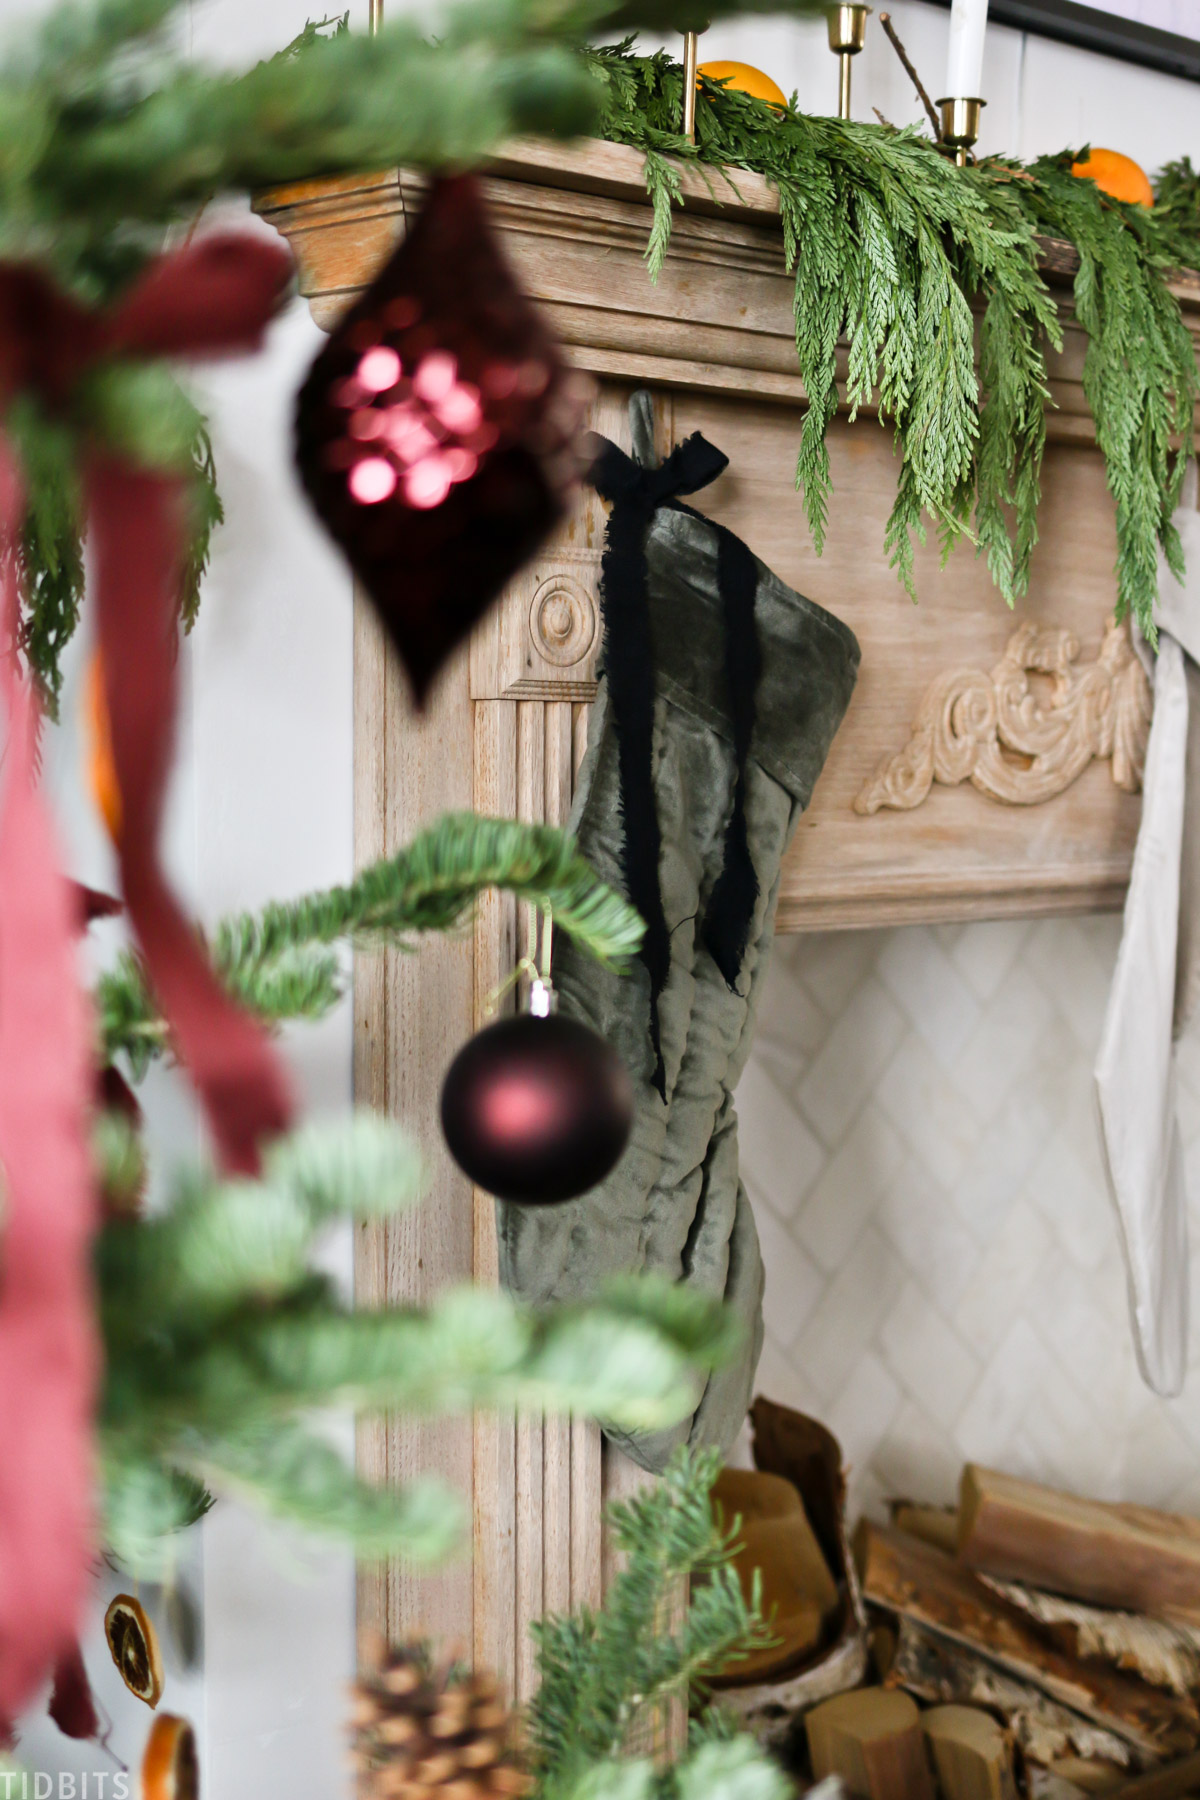 Christmas ornaments hanging from a Christmas tree with a mantel in the background decorated with Christmas decor